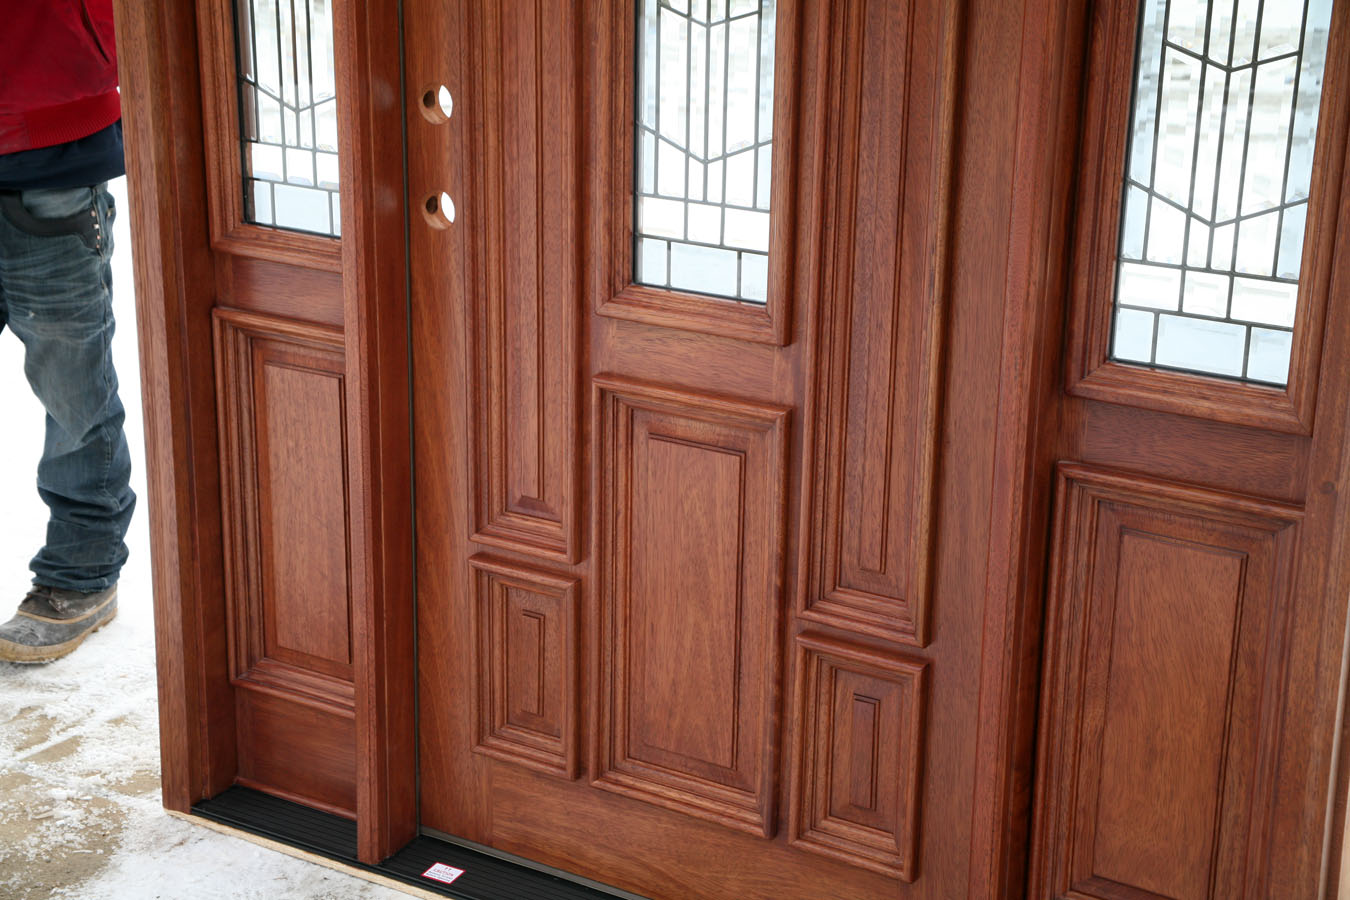 Doors Design: Exterior Doors Prehung With Sidelights